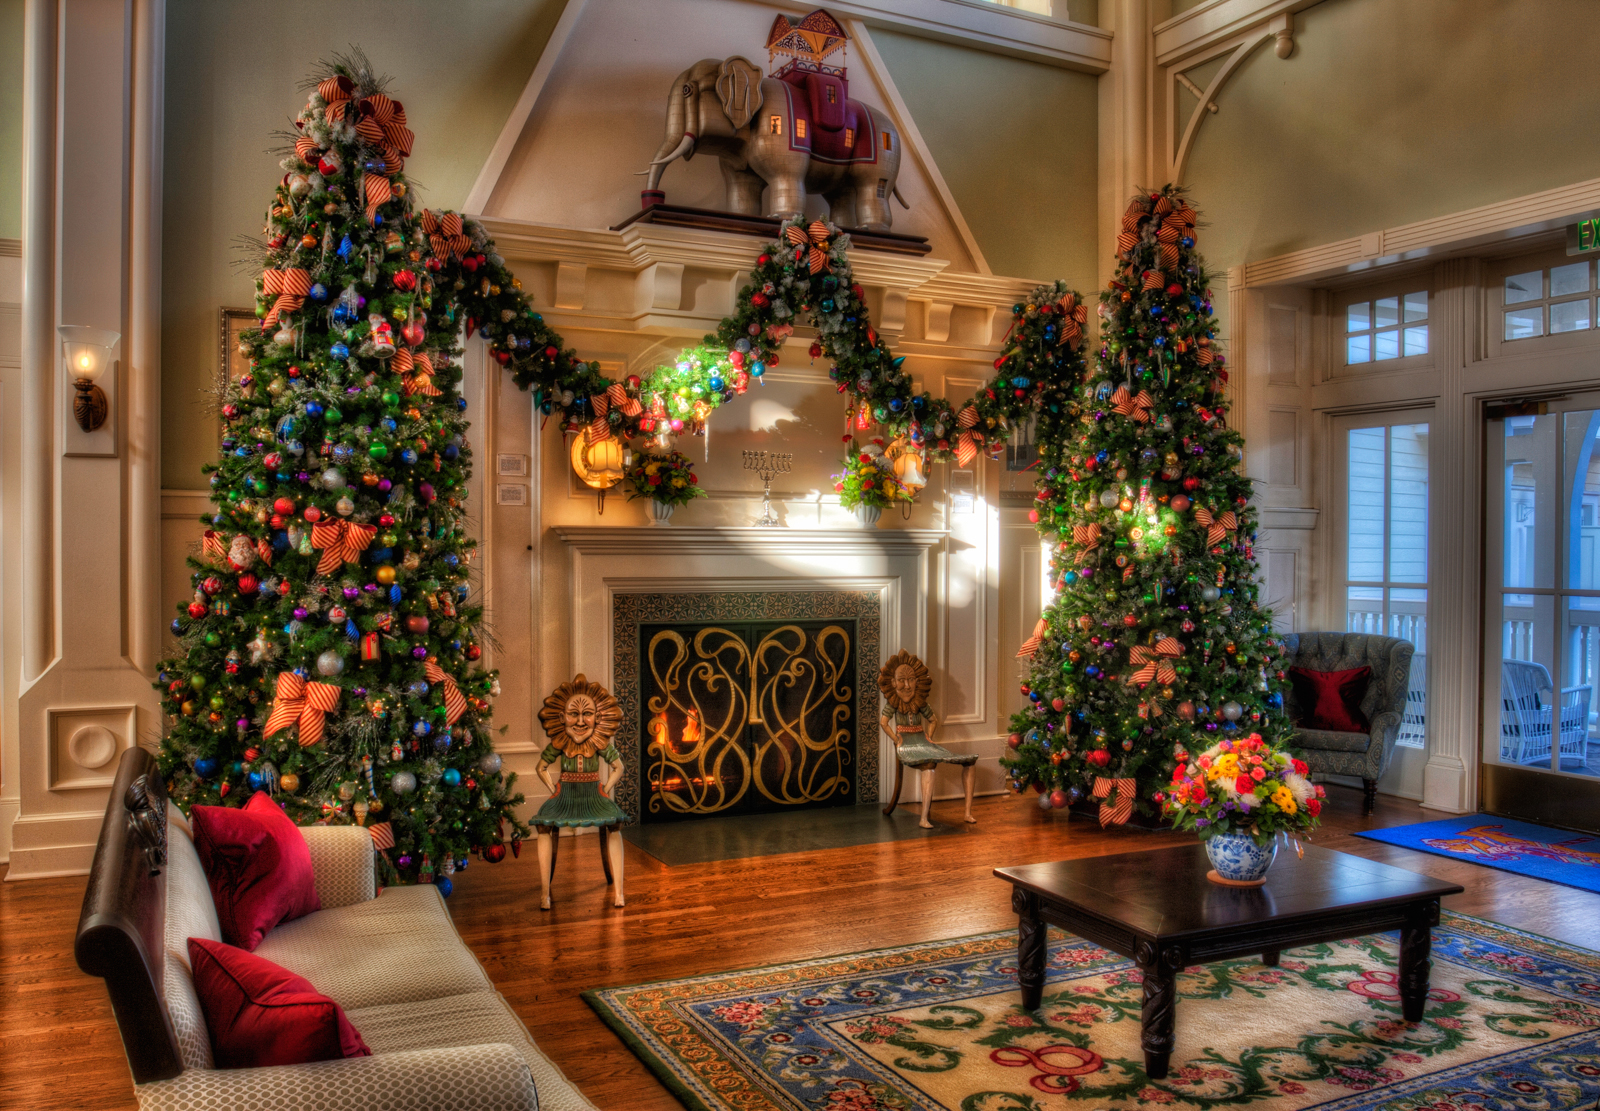 Disney Christmas Decorations.Disney Christmas Decorations Matthew Paulson Photography